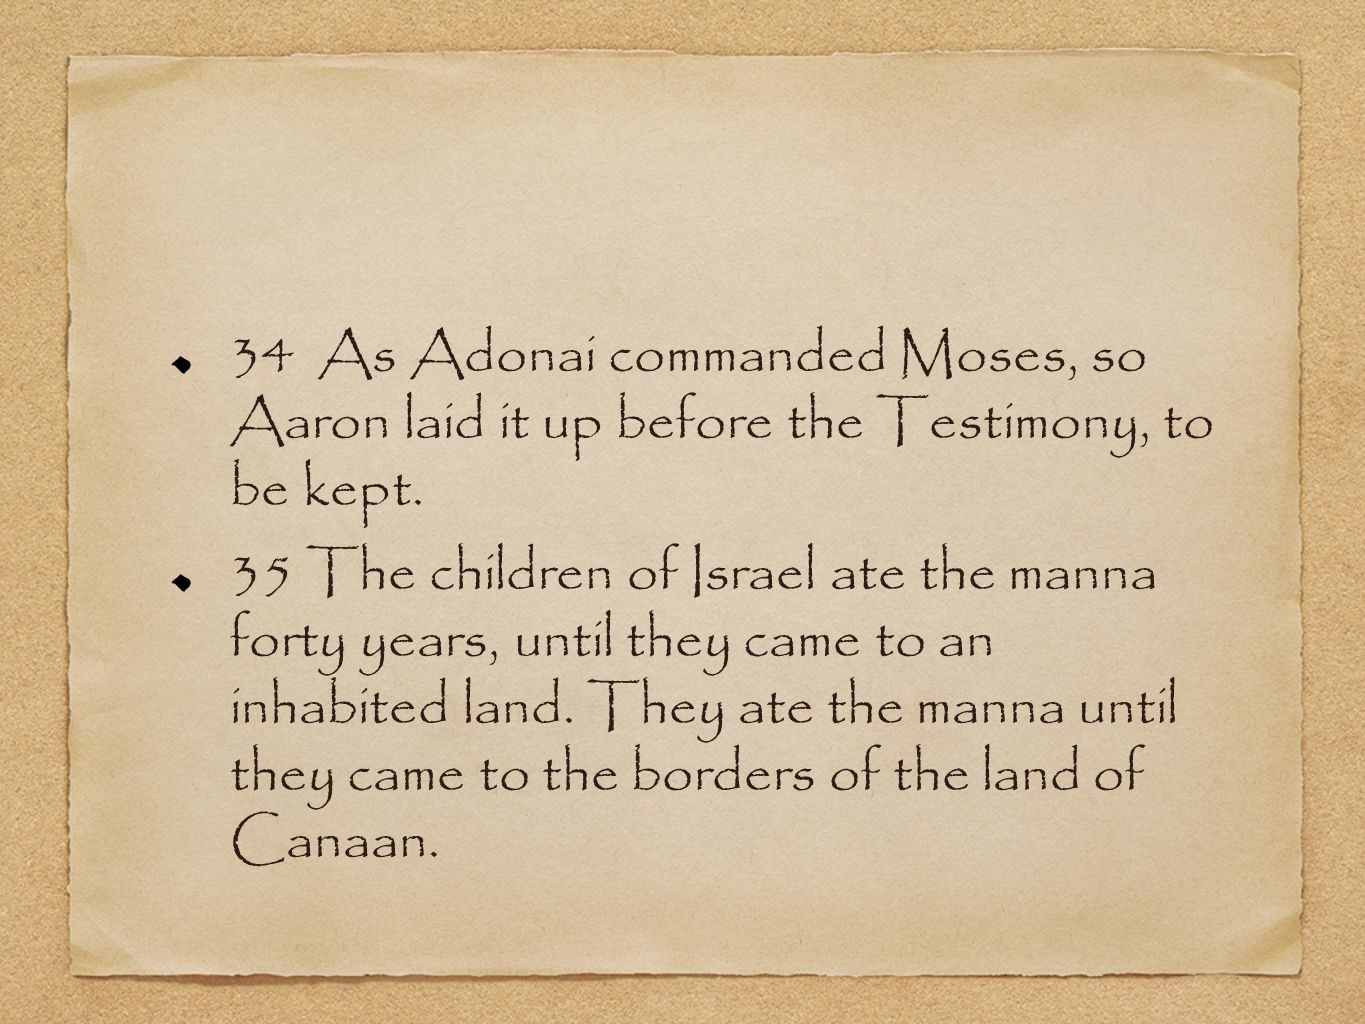 34 As Adonai commanded Moses, so Aaron laid it up before the Testimony, to be kept.